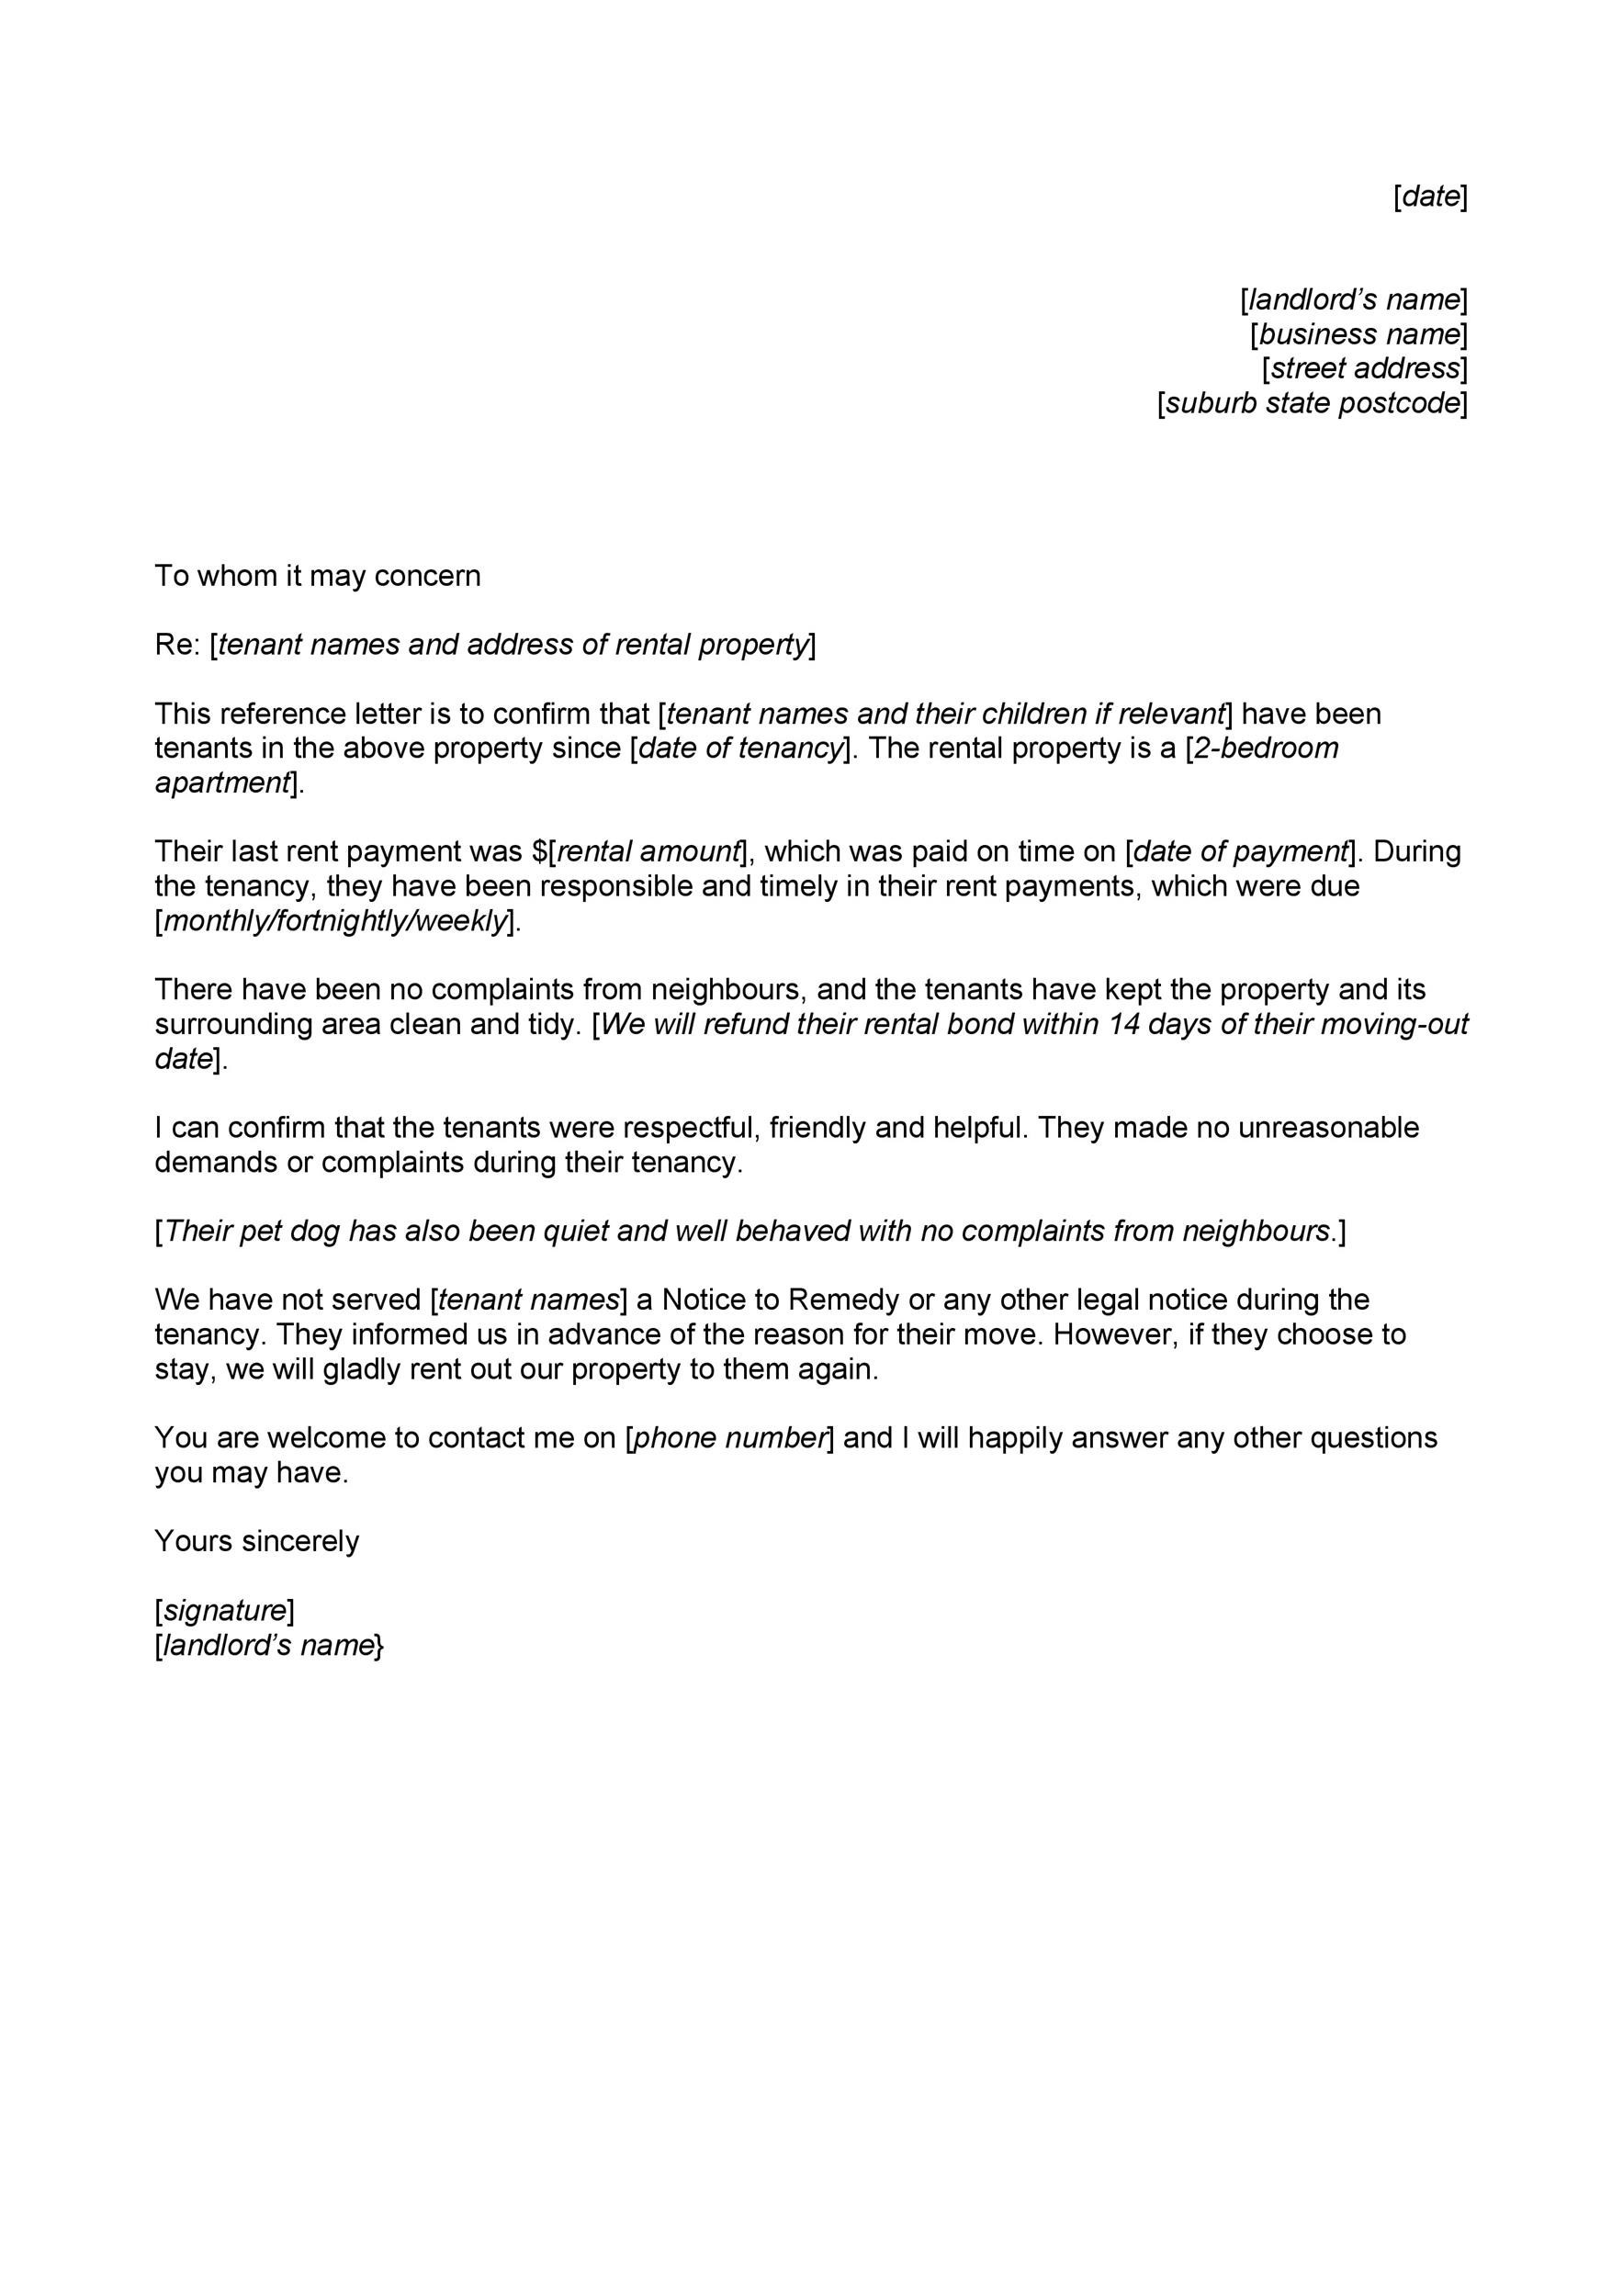 Sample Letter For Tenant To Move Out Uk